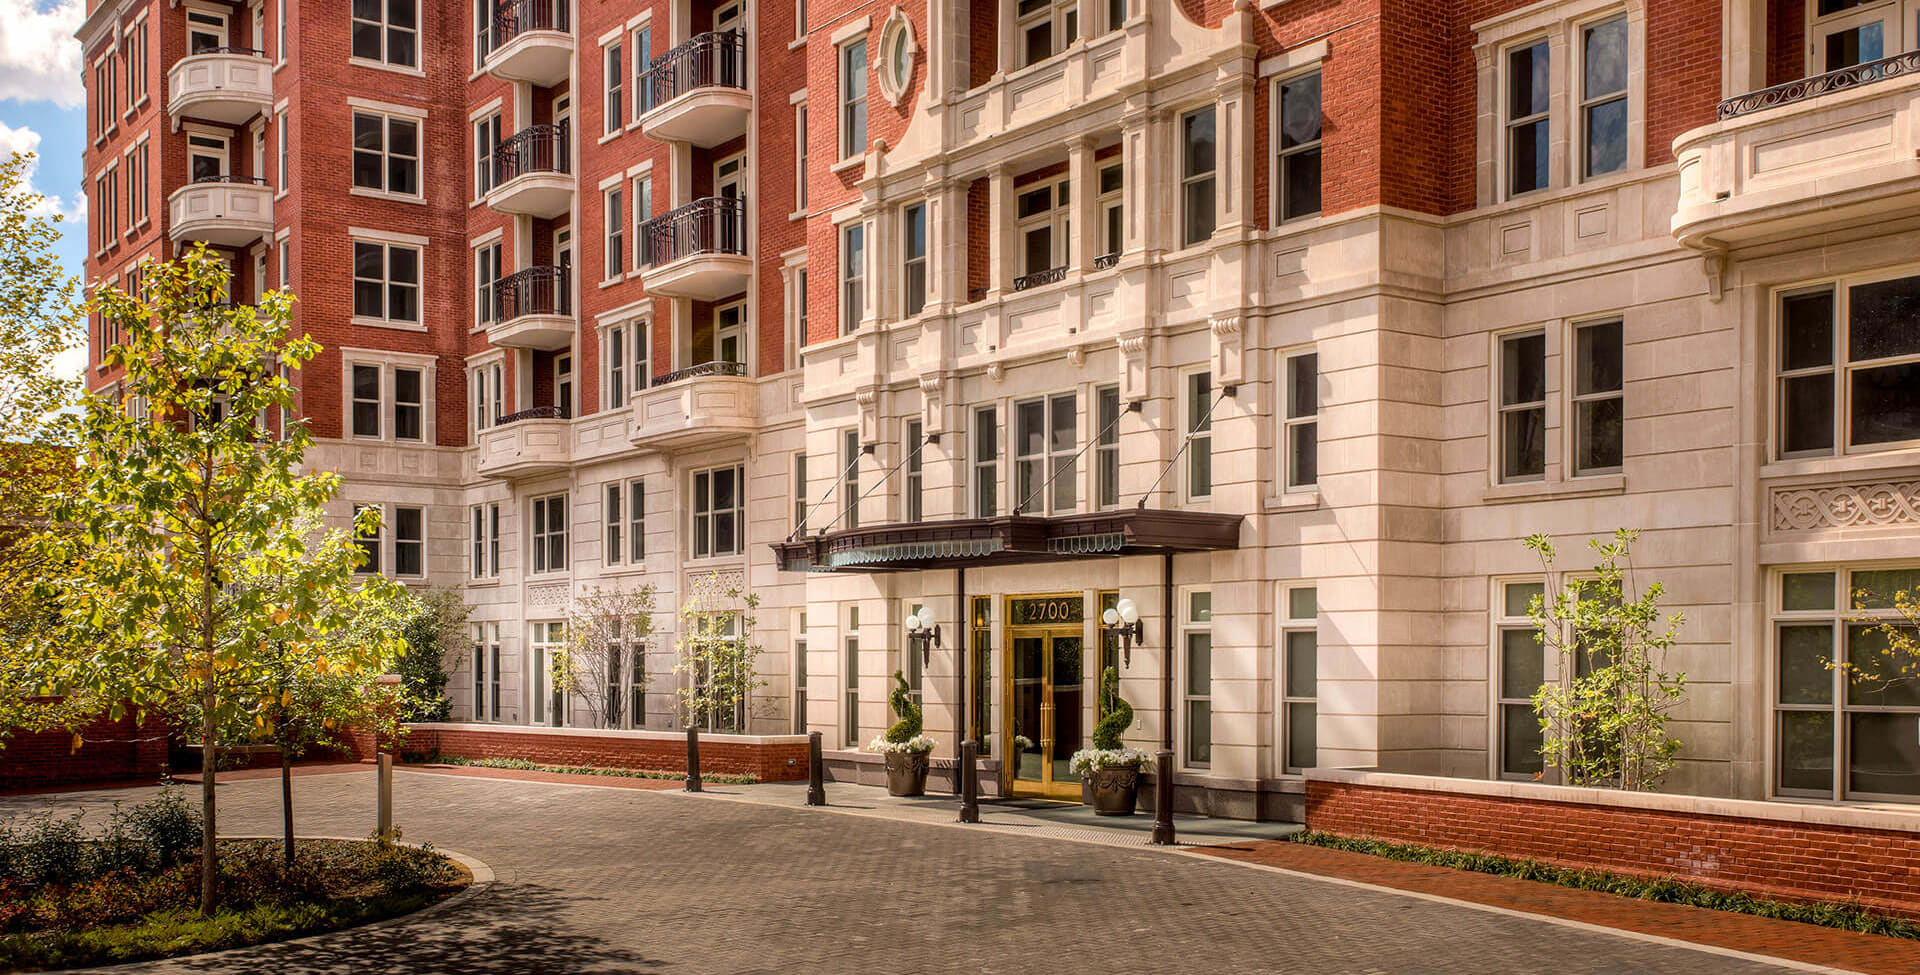 Grand front entrance at The Woodley, Washington, DC